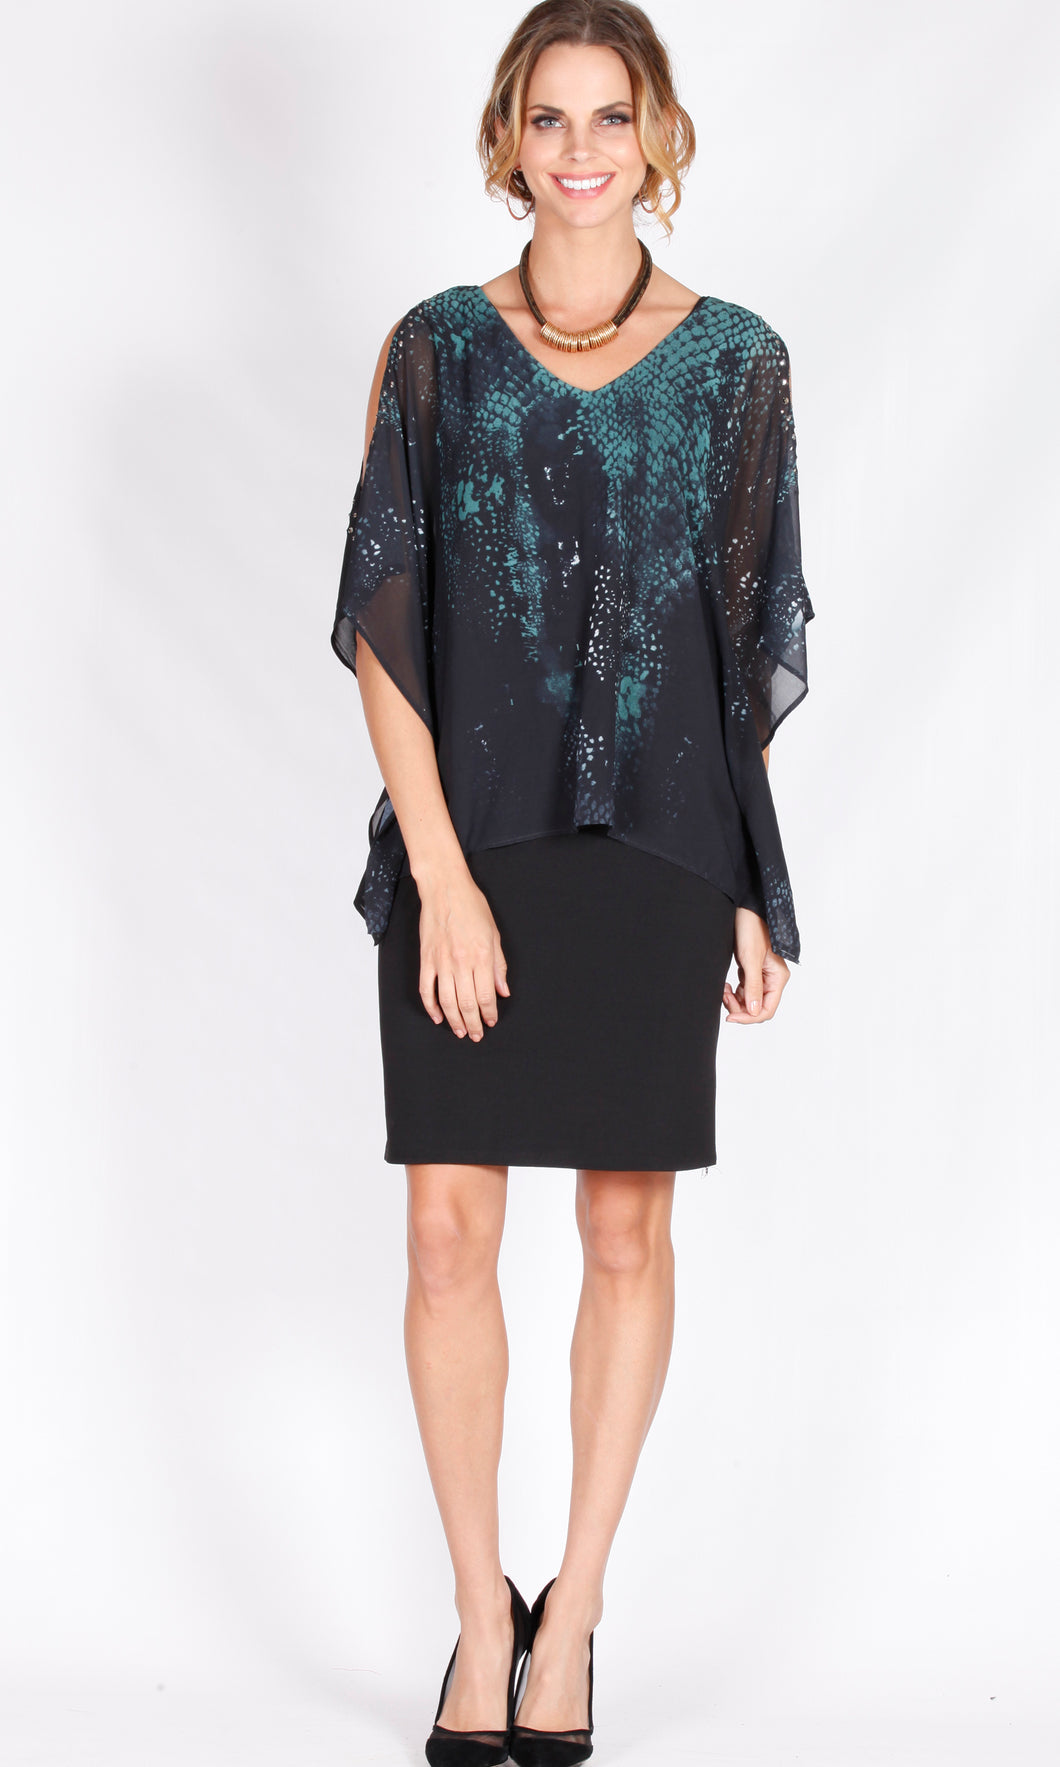 VS7117-6NC Cold Shoulder Chiffon Overlay Diamond Dress (Pack)